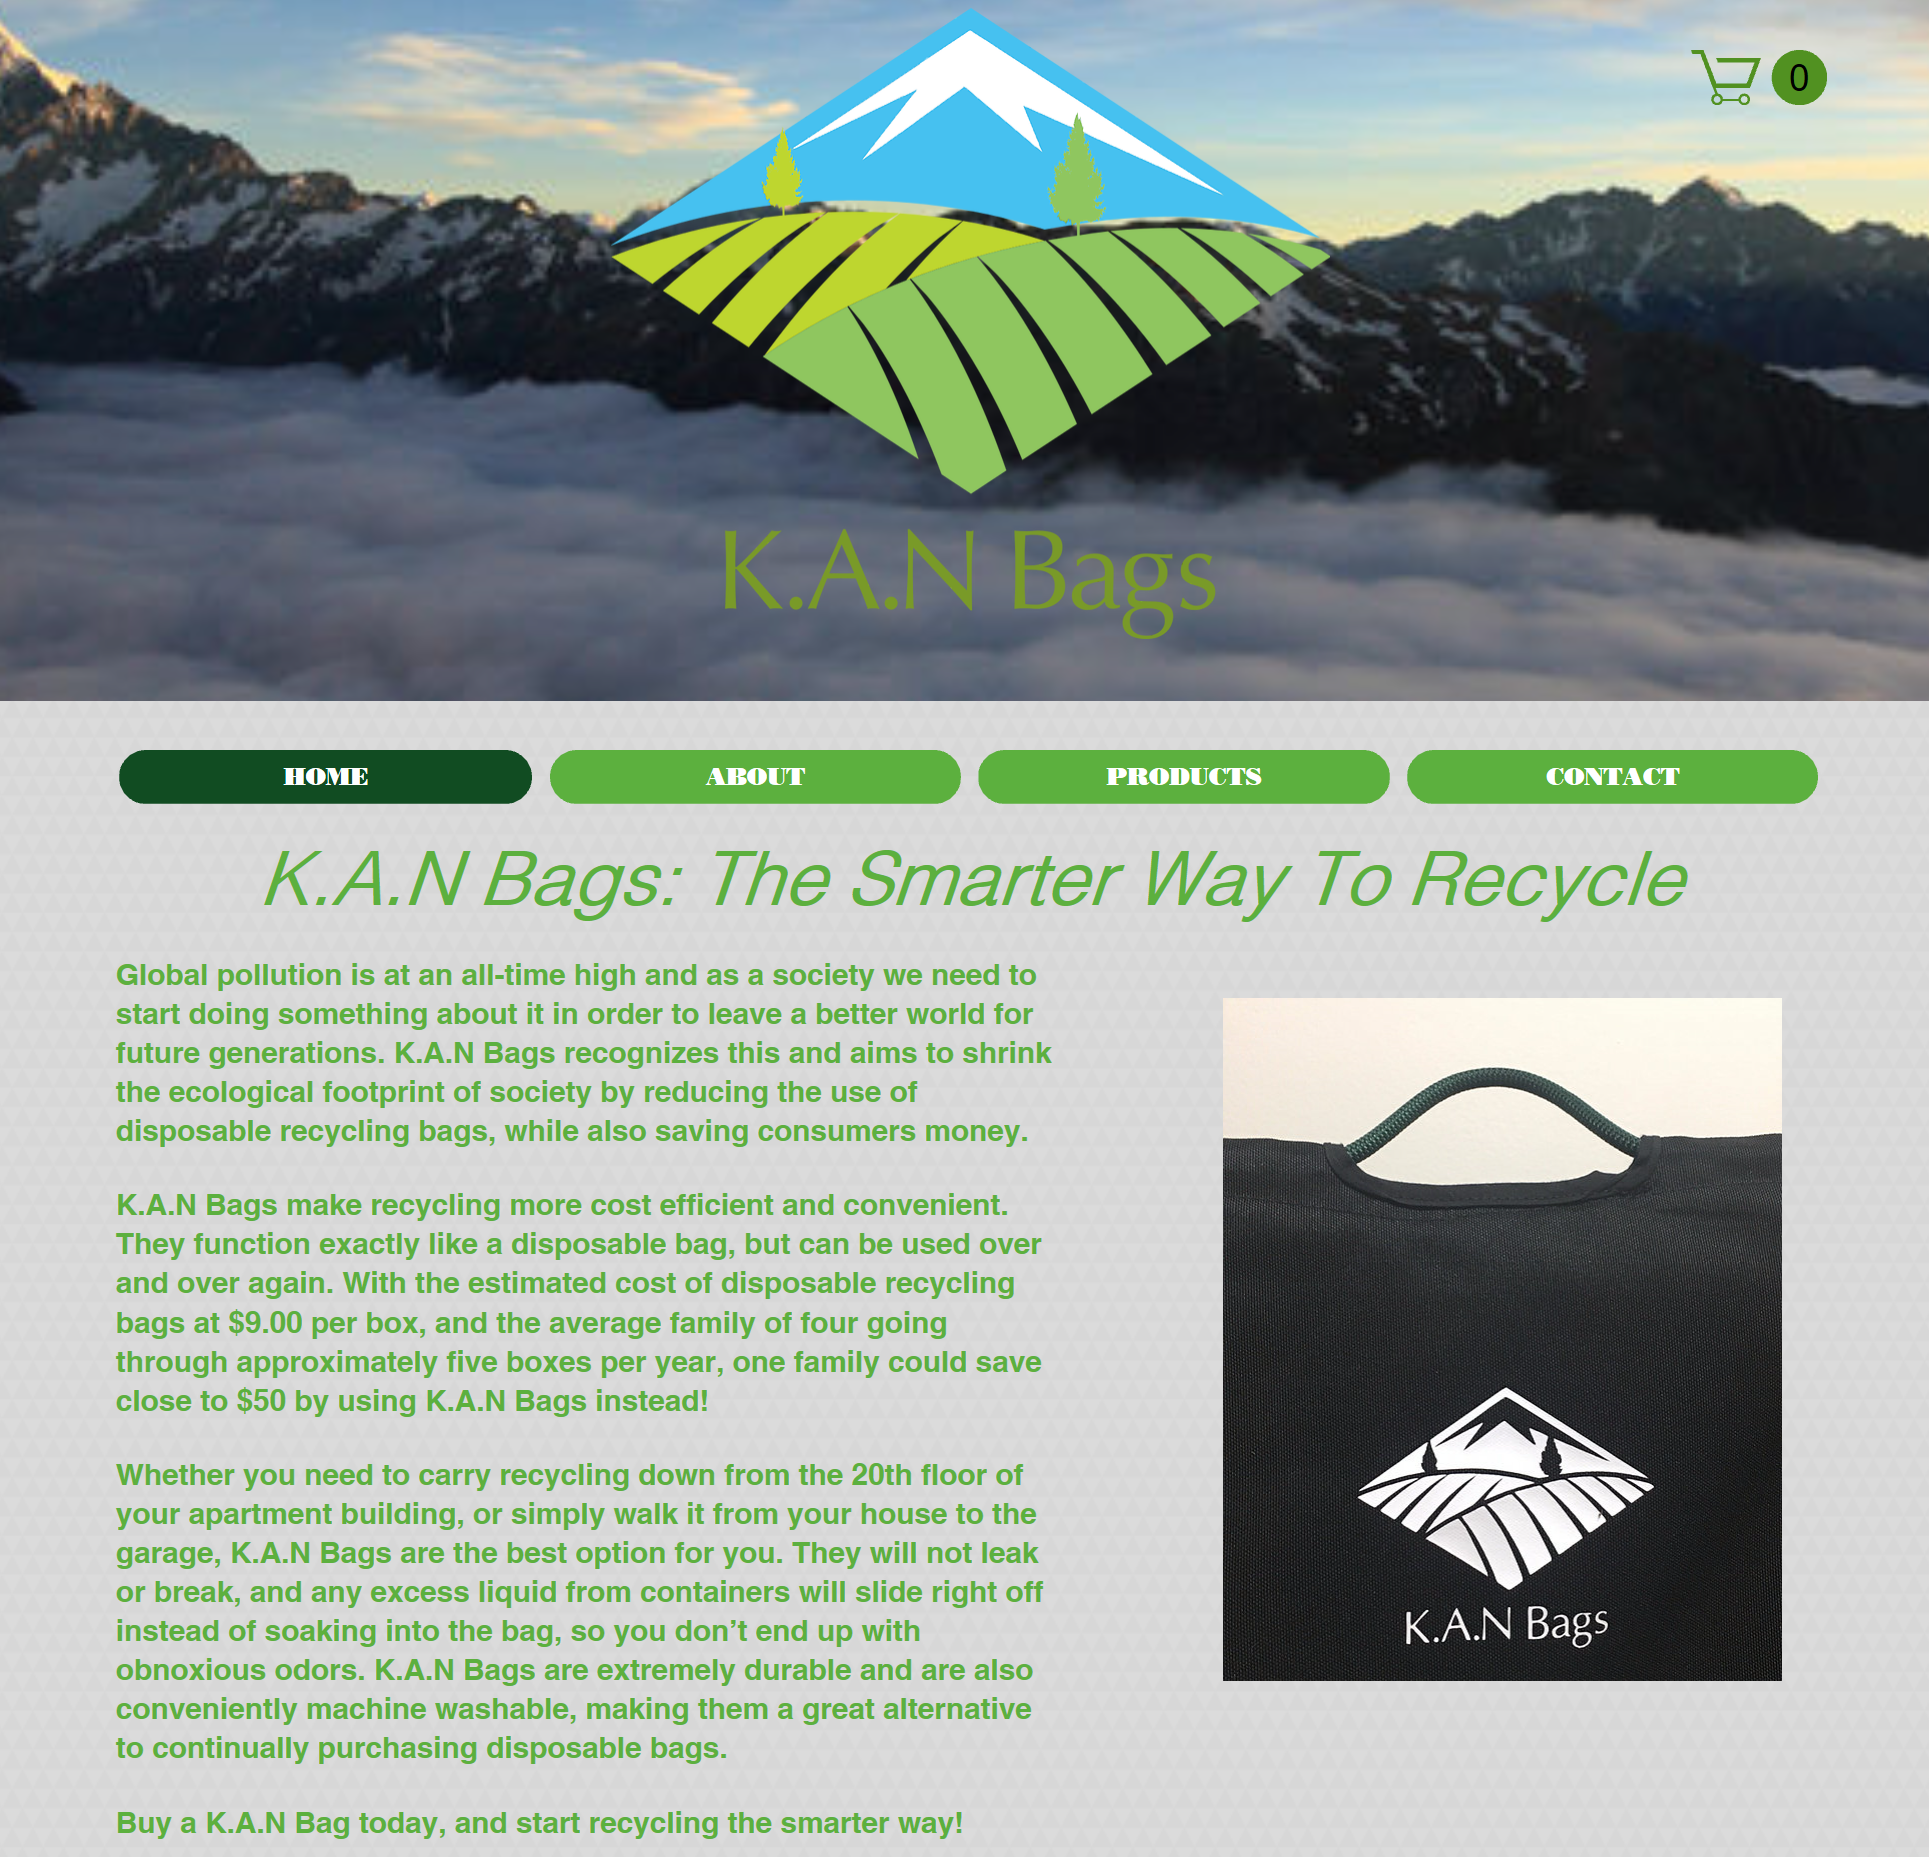 Website Copy  K.A.N Bags